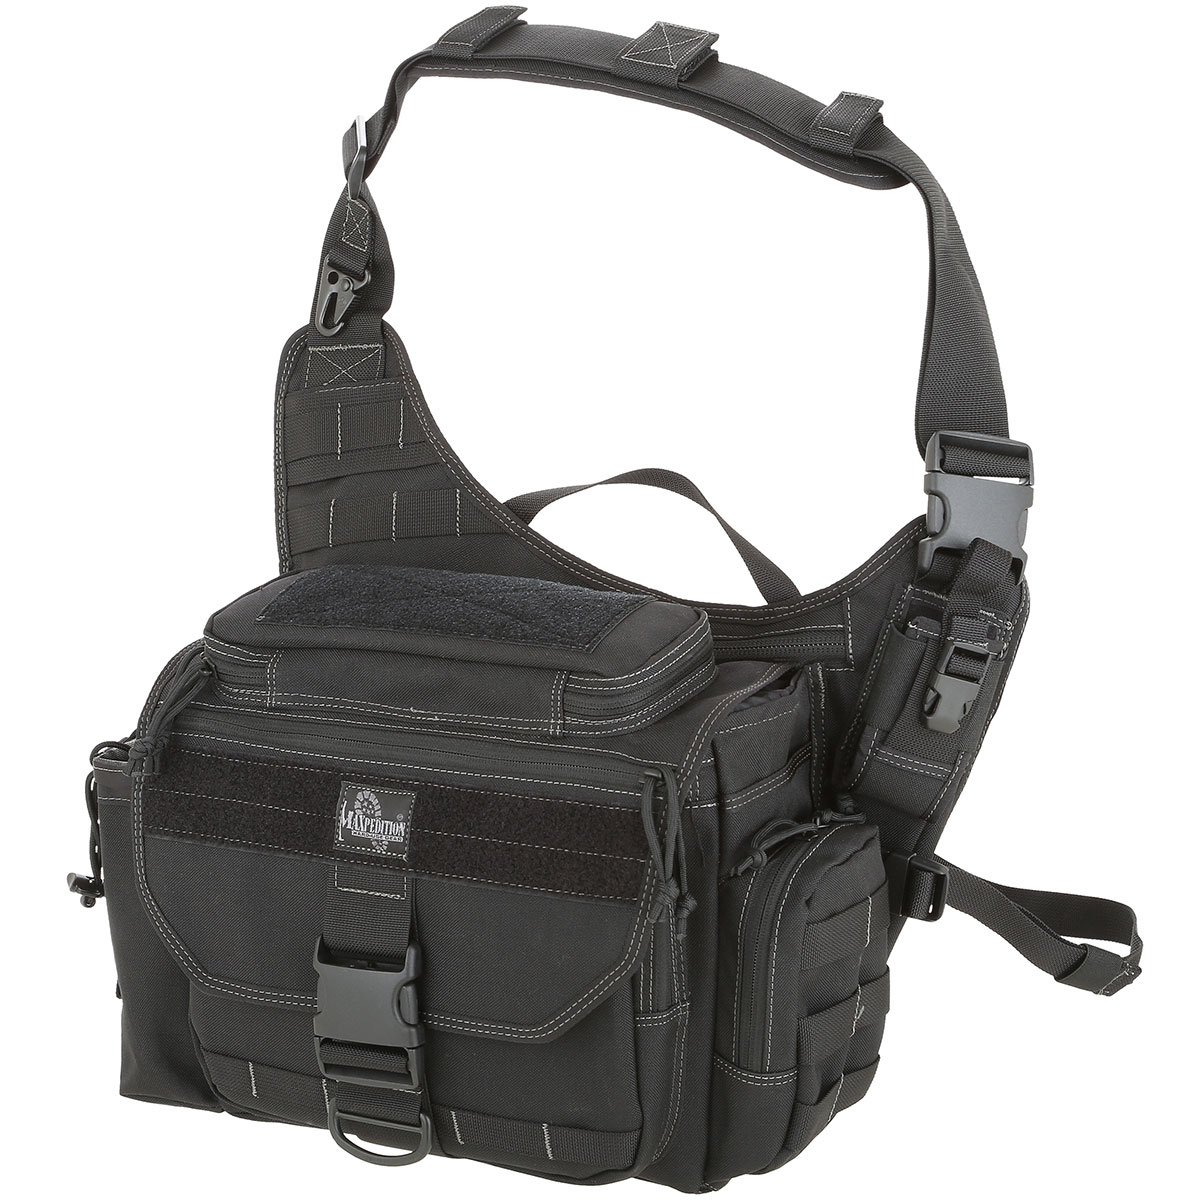 Balo Maxpedition Mongo Versipack - Black